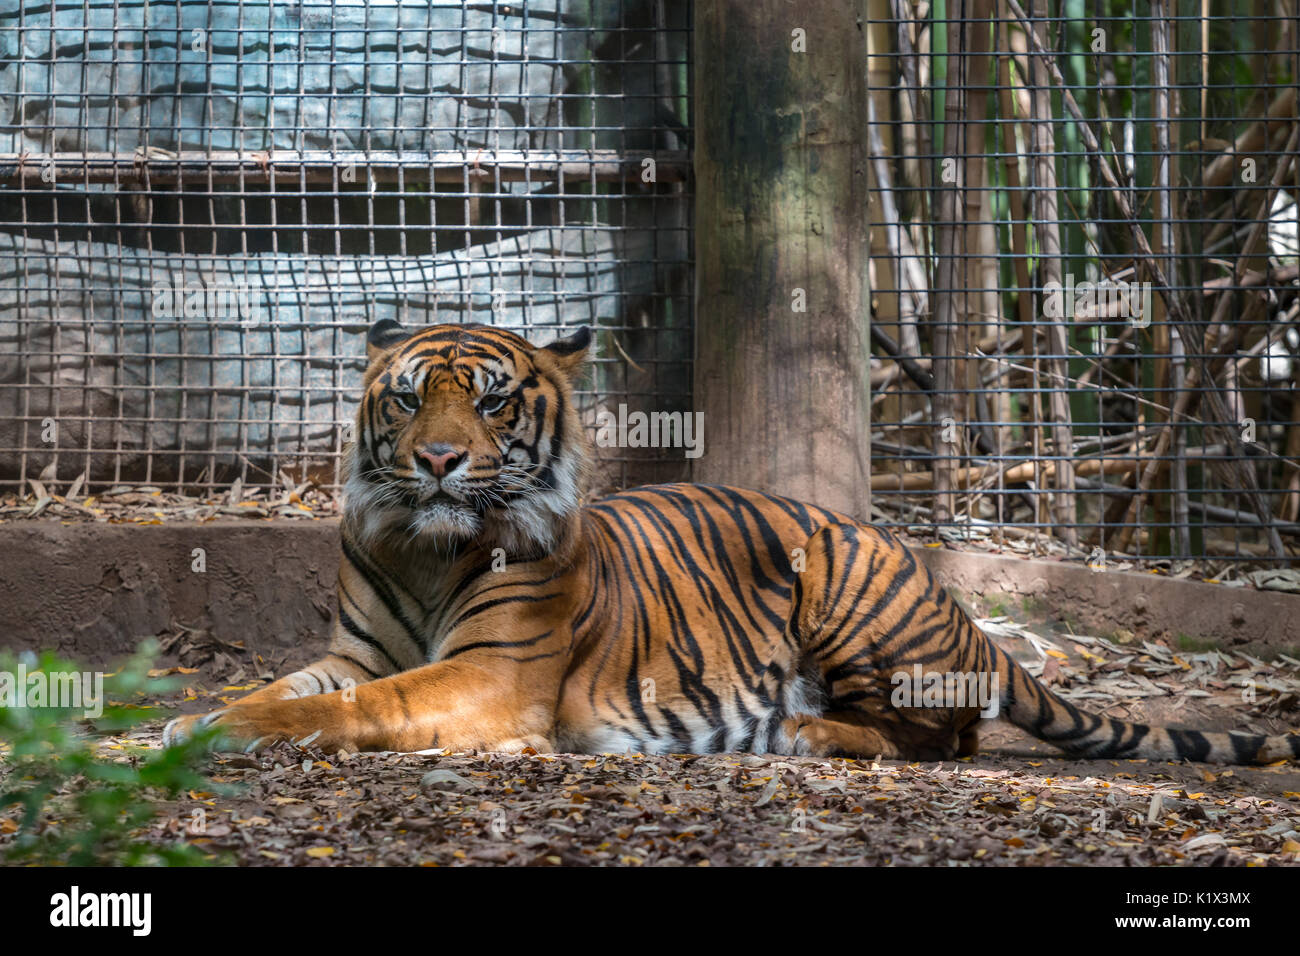 Tiger Sitting in Zoo Cell Looking at Camera - Stock Image